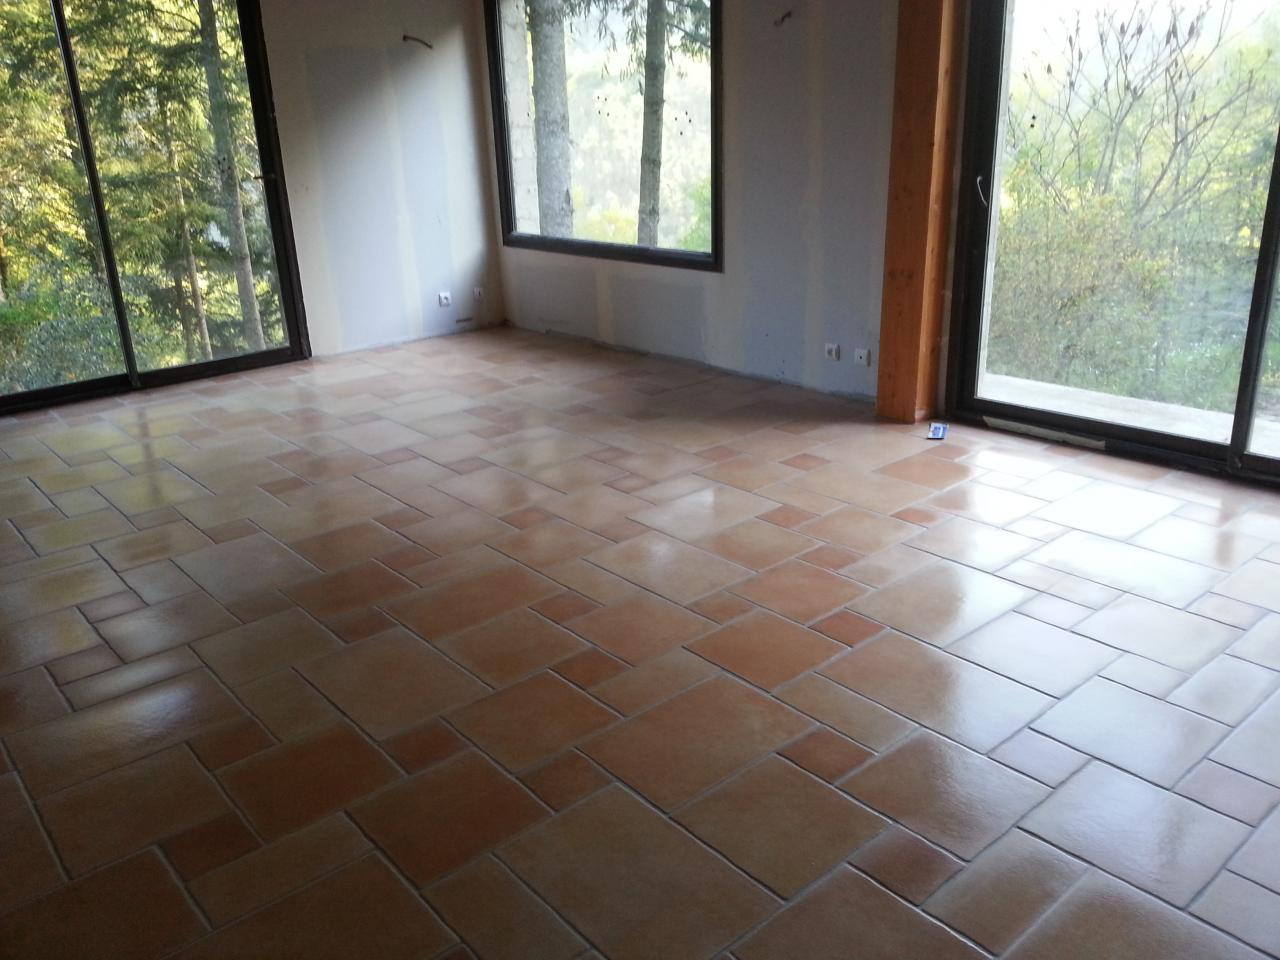 Pose de carrelage en opus romain